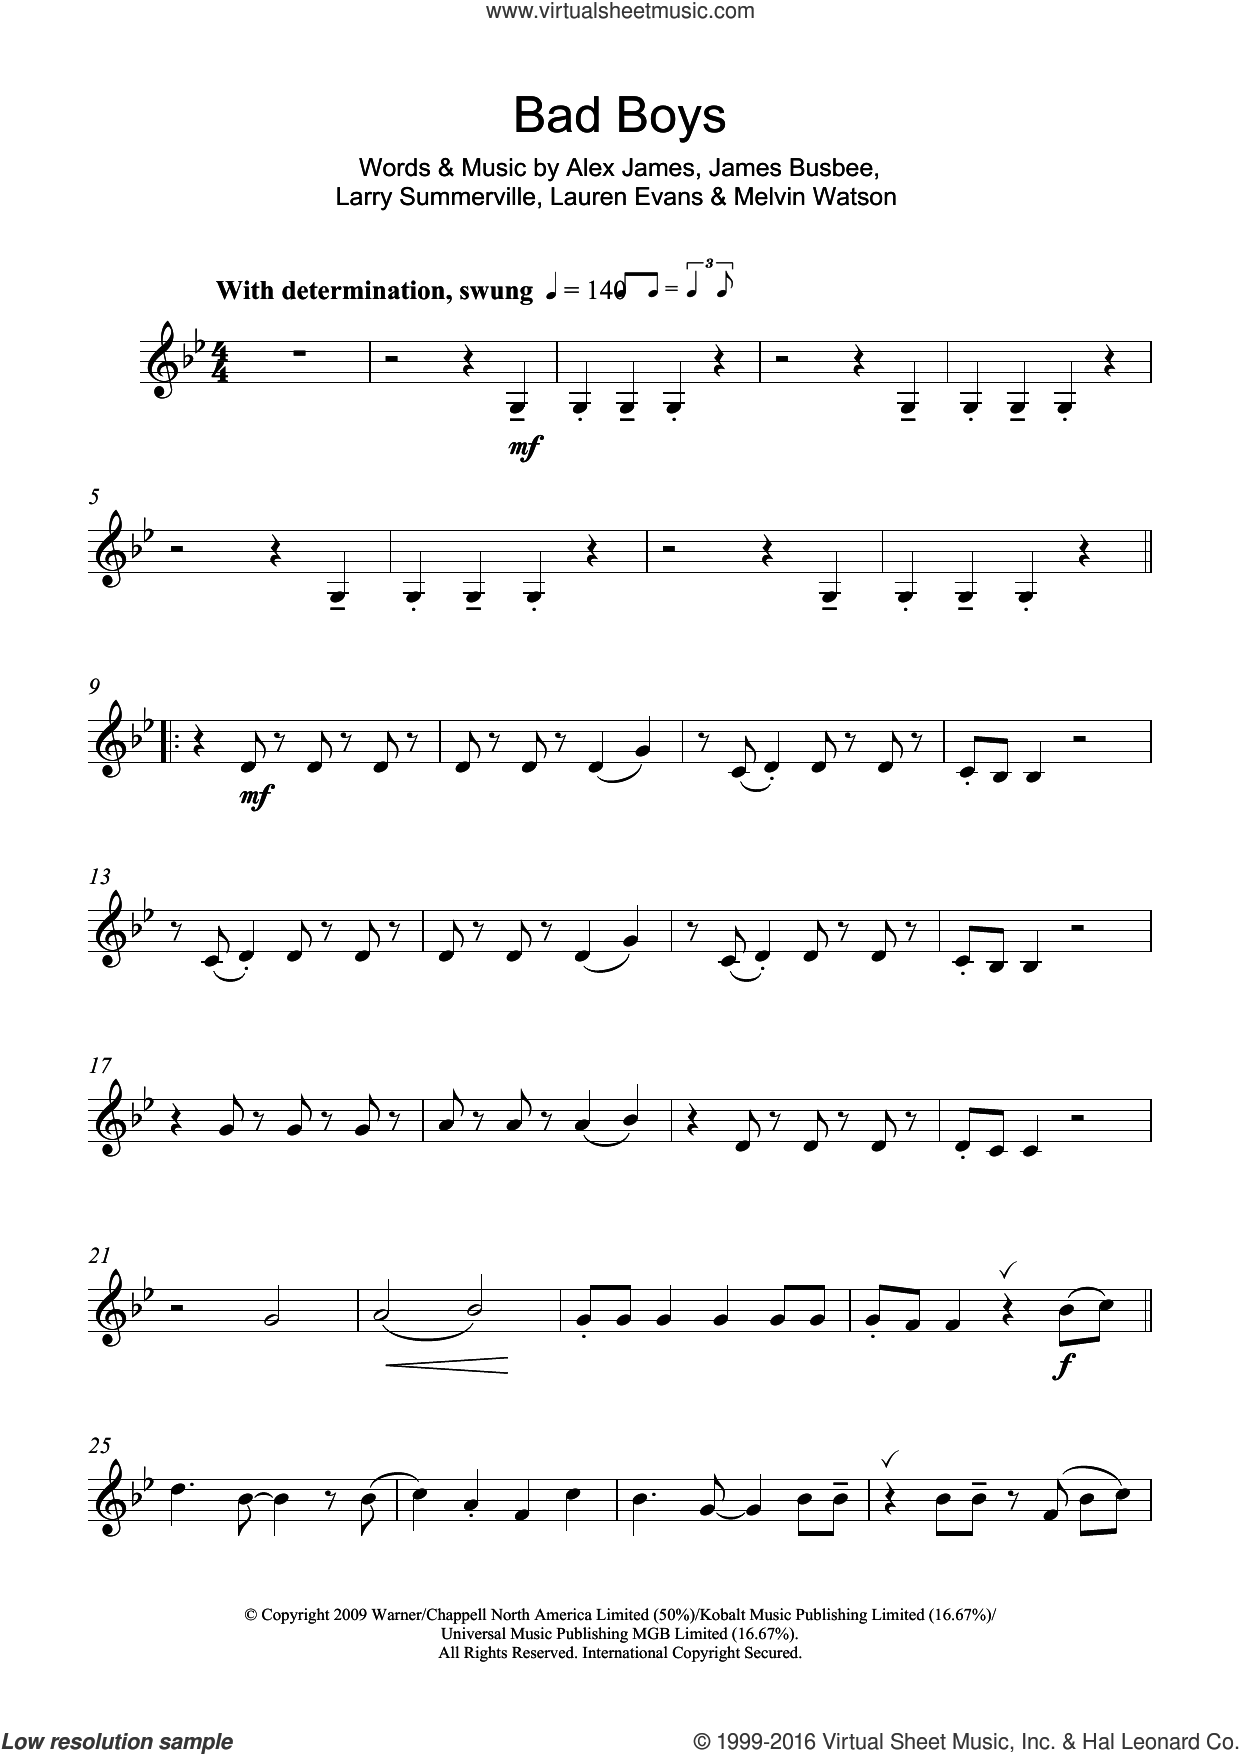 Bad Boys sheet music for clarinet solo by Alexandra Burke, Alex James, James Busbee, Larry Summerville, Lauren Evans and Melvin Watson, intermediate skill level